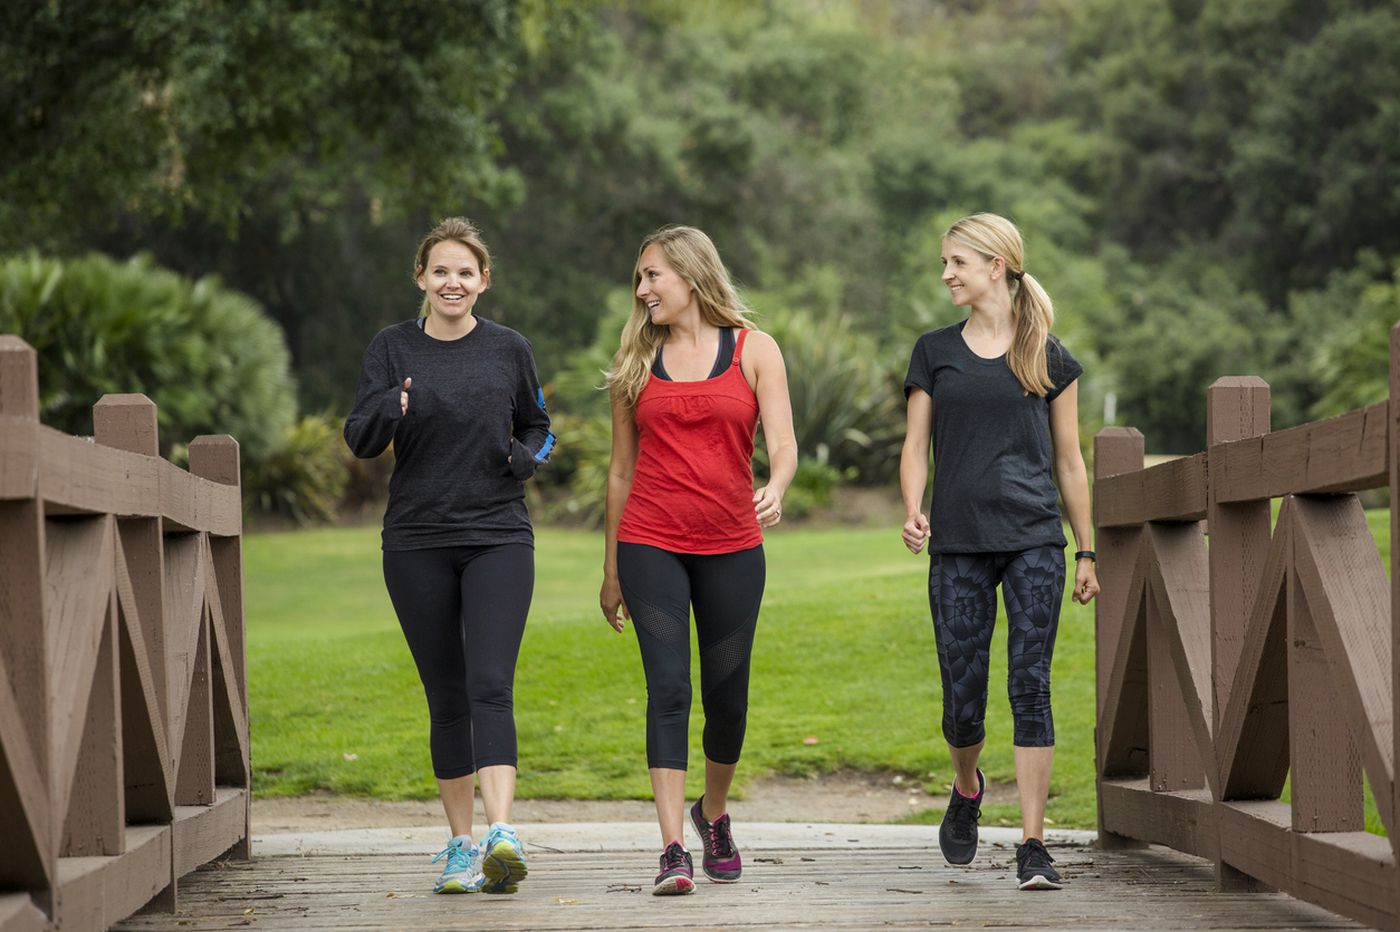 Walking for weight loss: 3 tips to make each step count